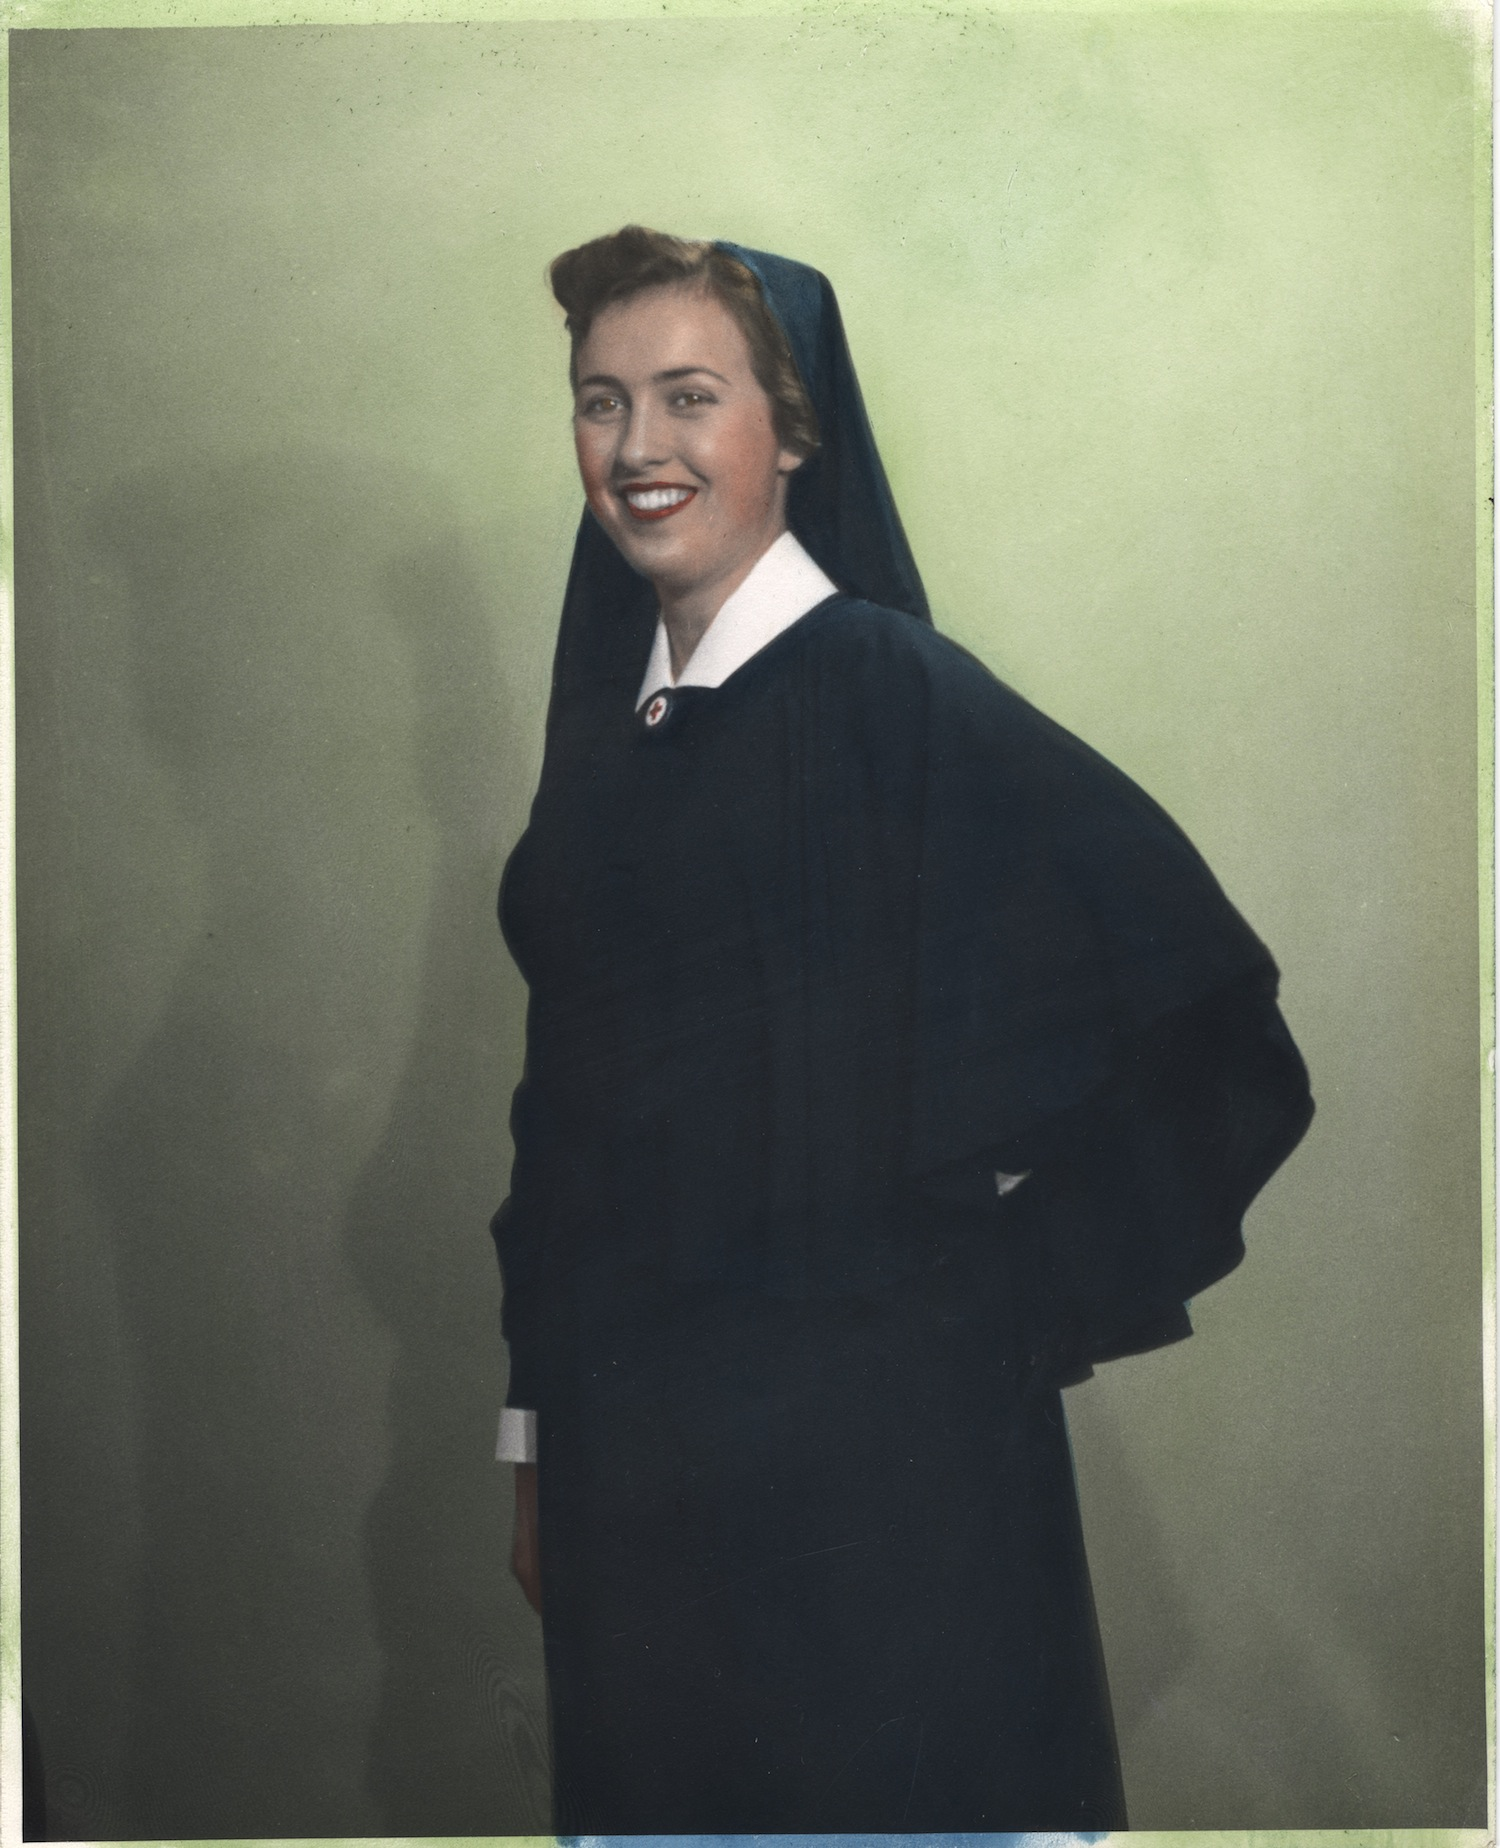 Nurse wearing uniform from Germany